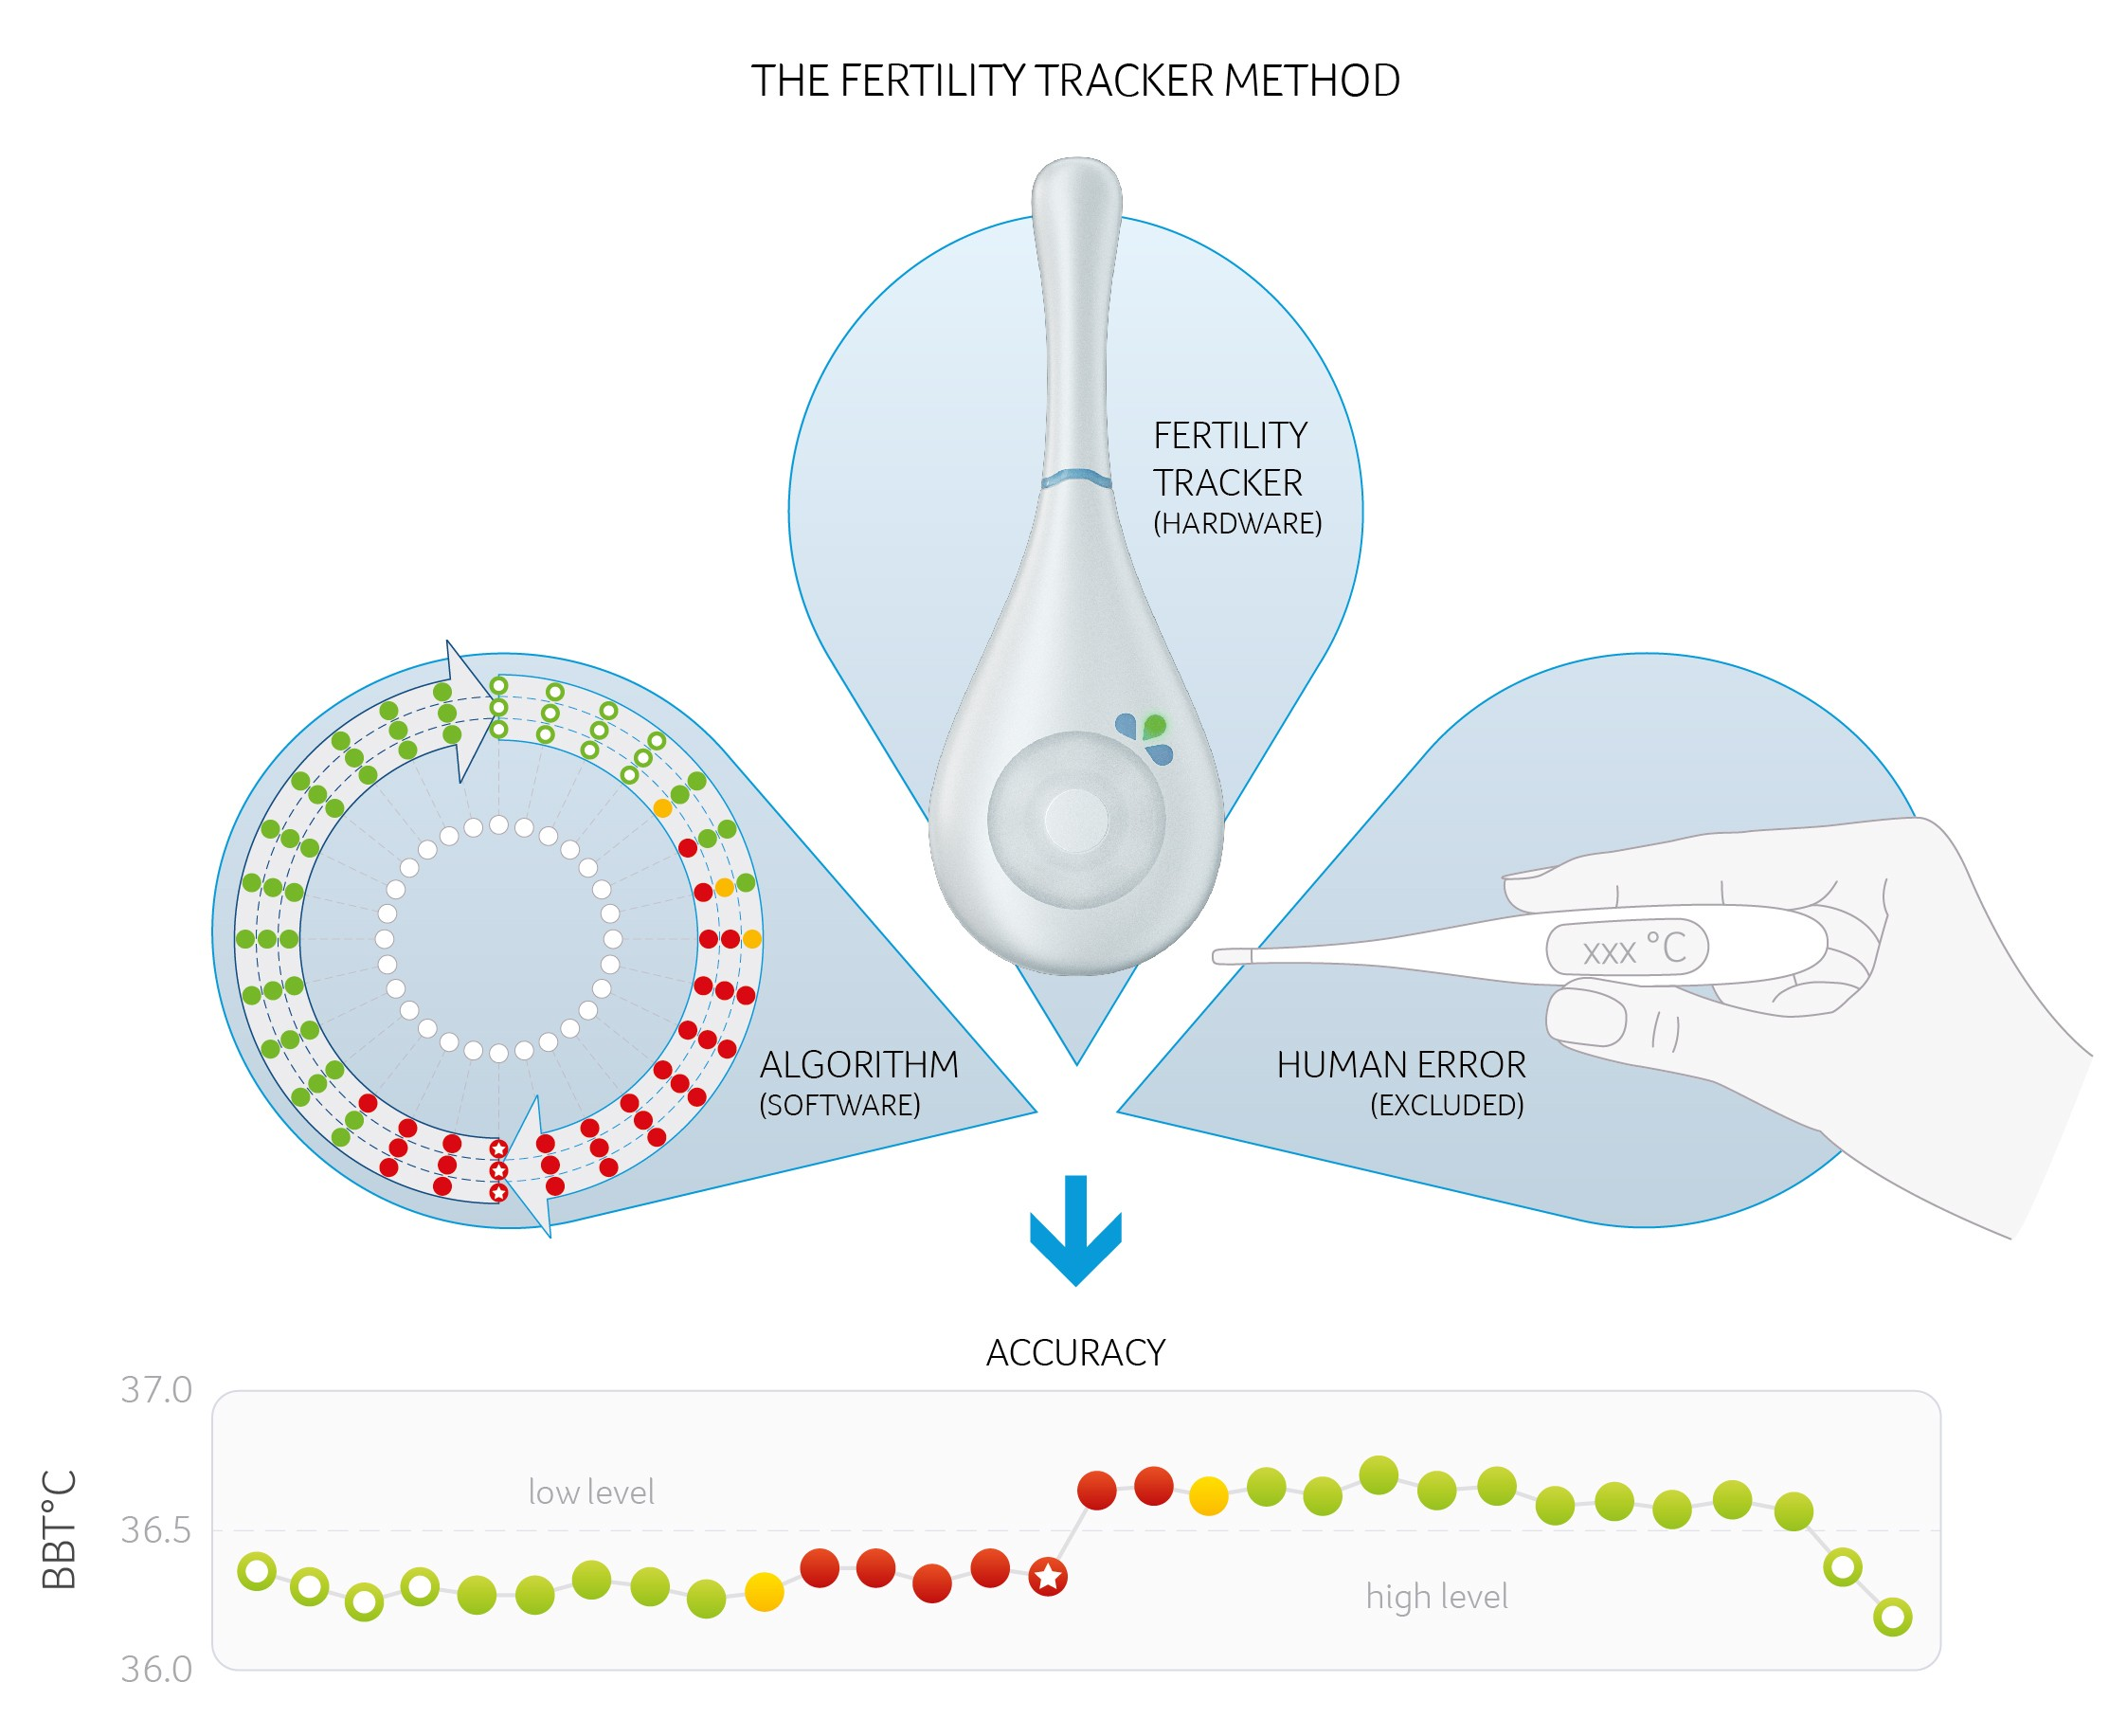 Die-Fertility-Tracker-Methode